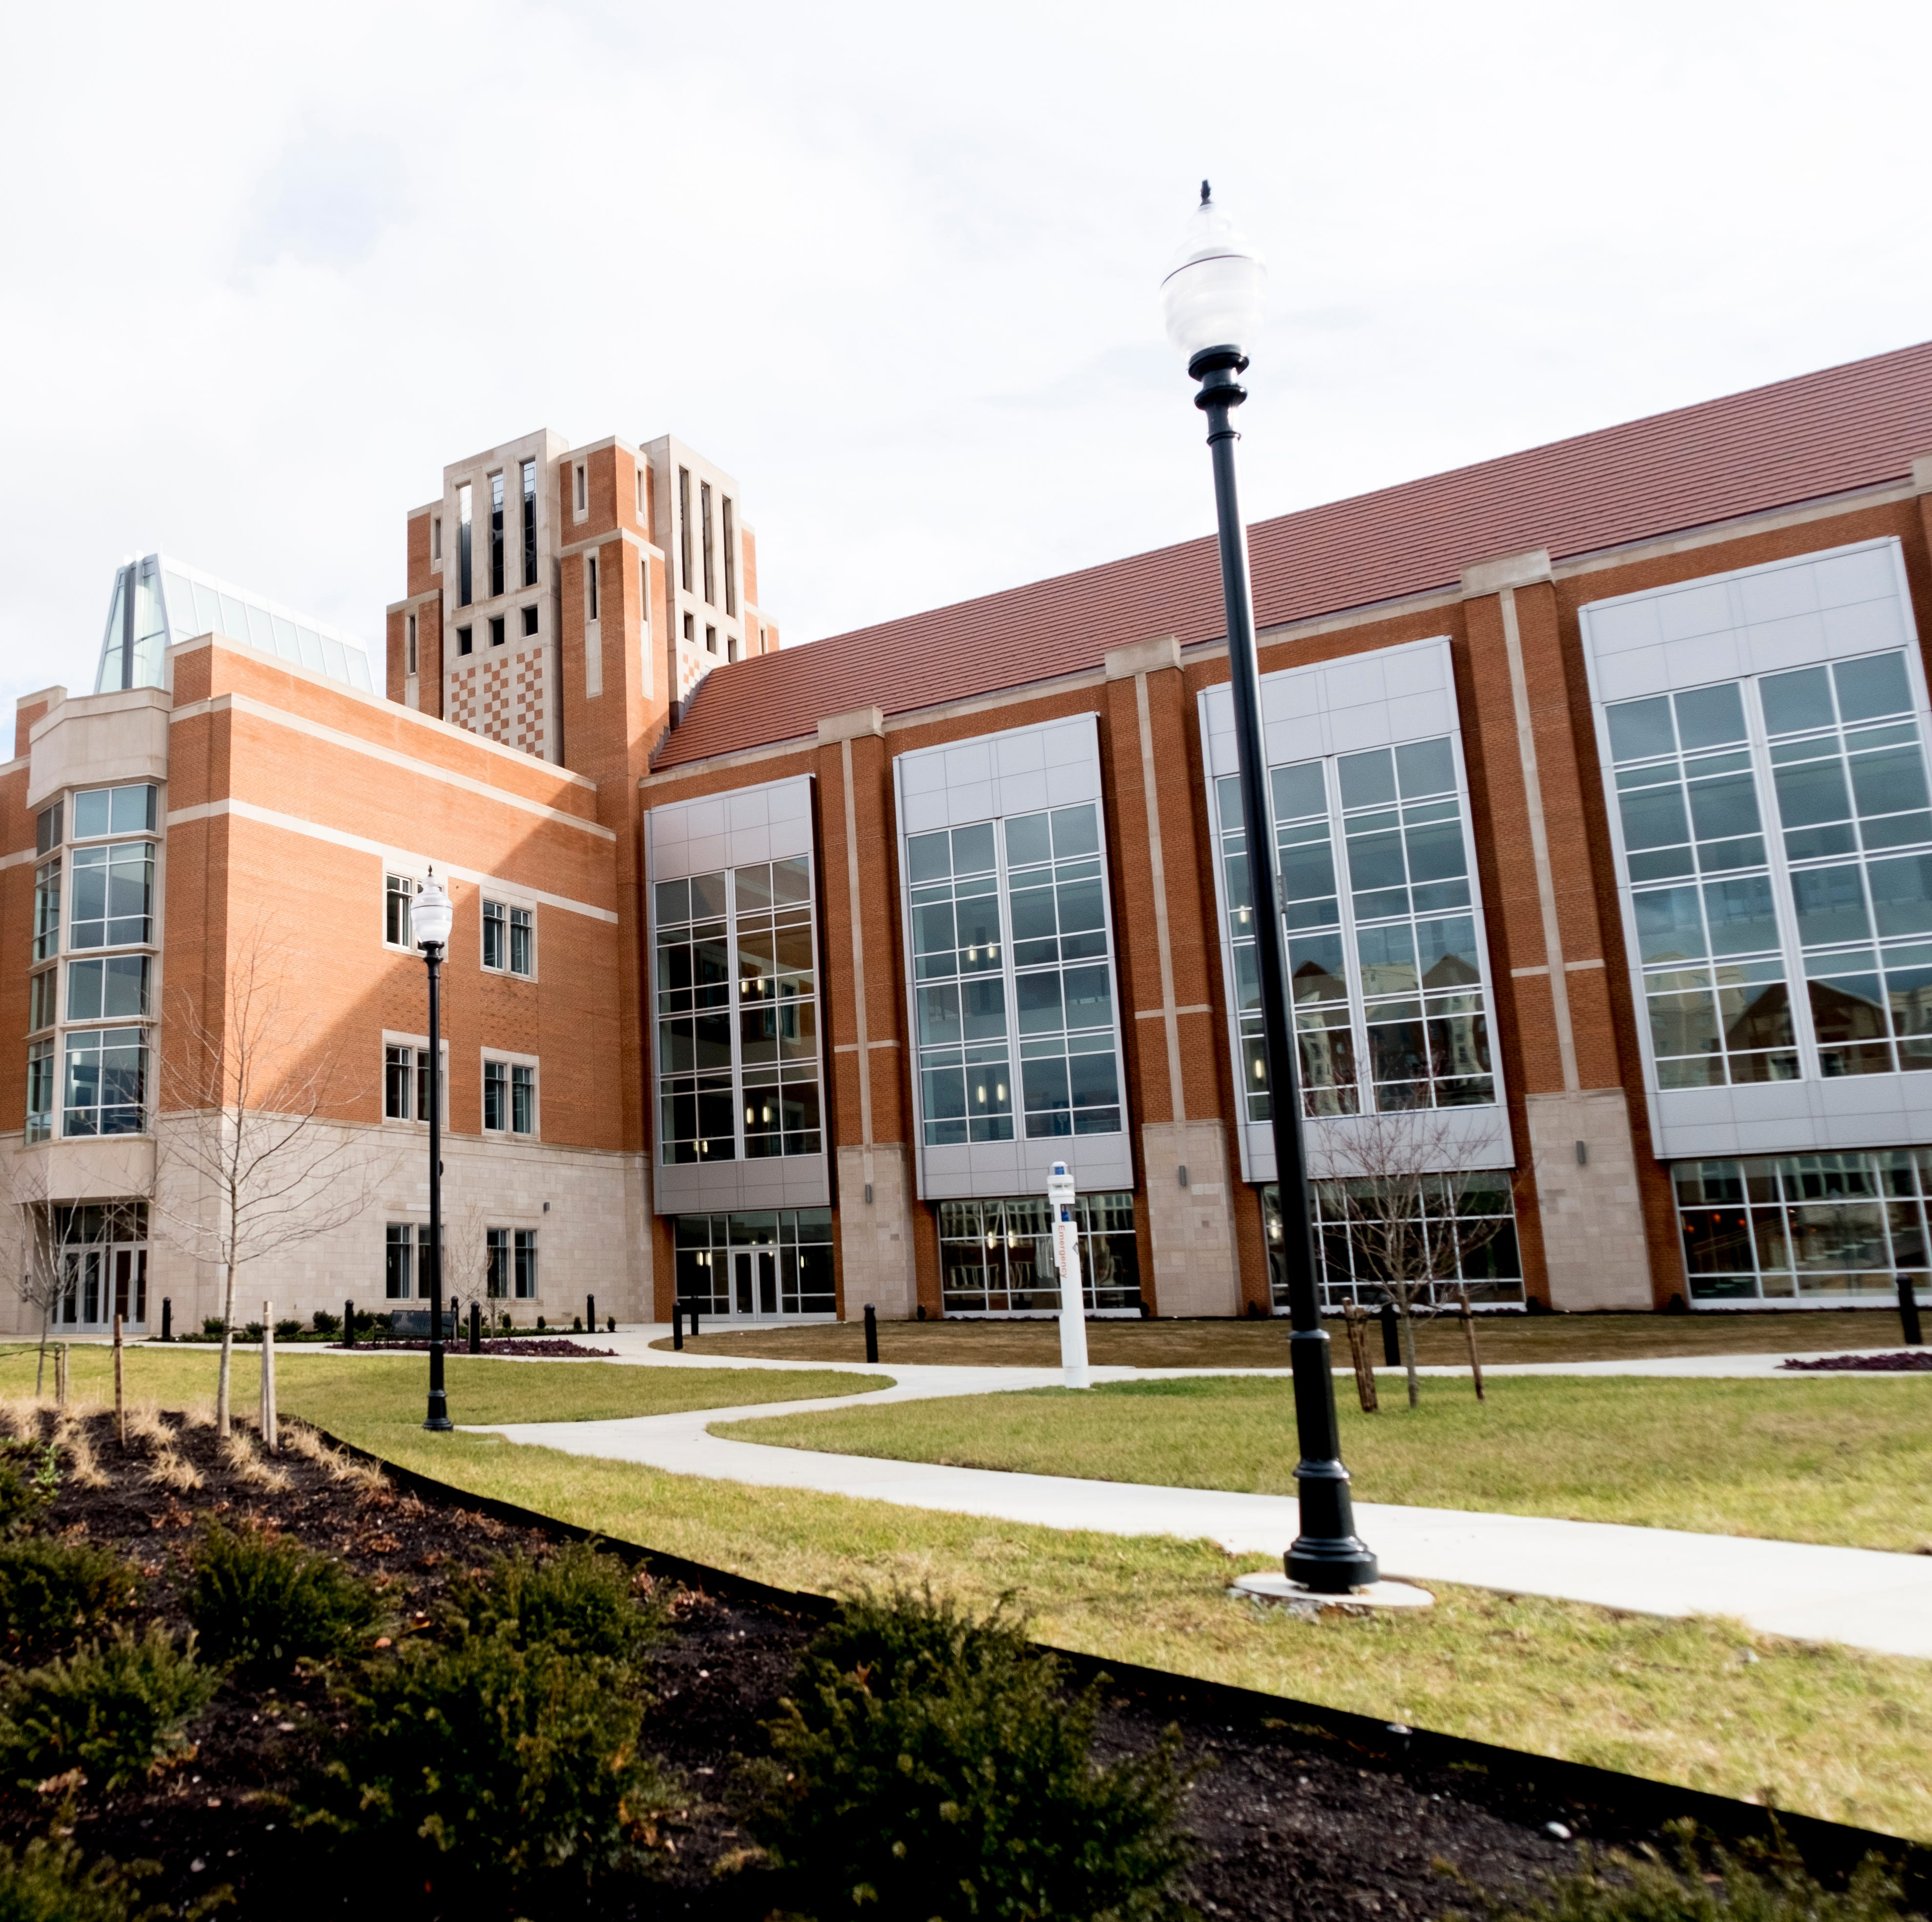 UT's new Student Union opens, with Steak 'n Shake, recreation area and more